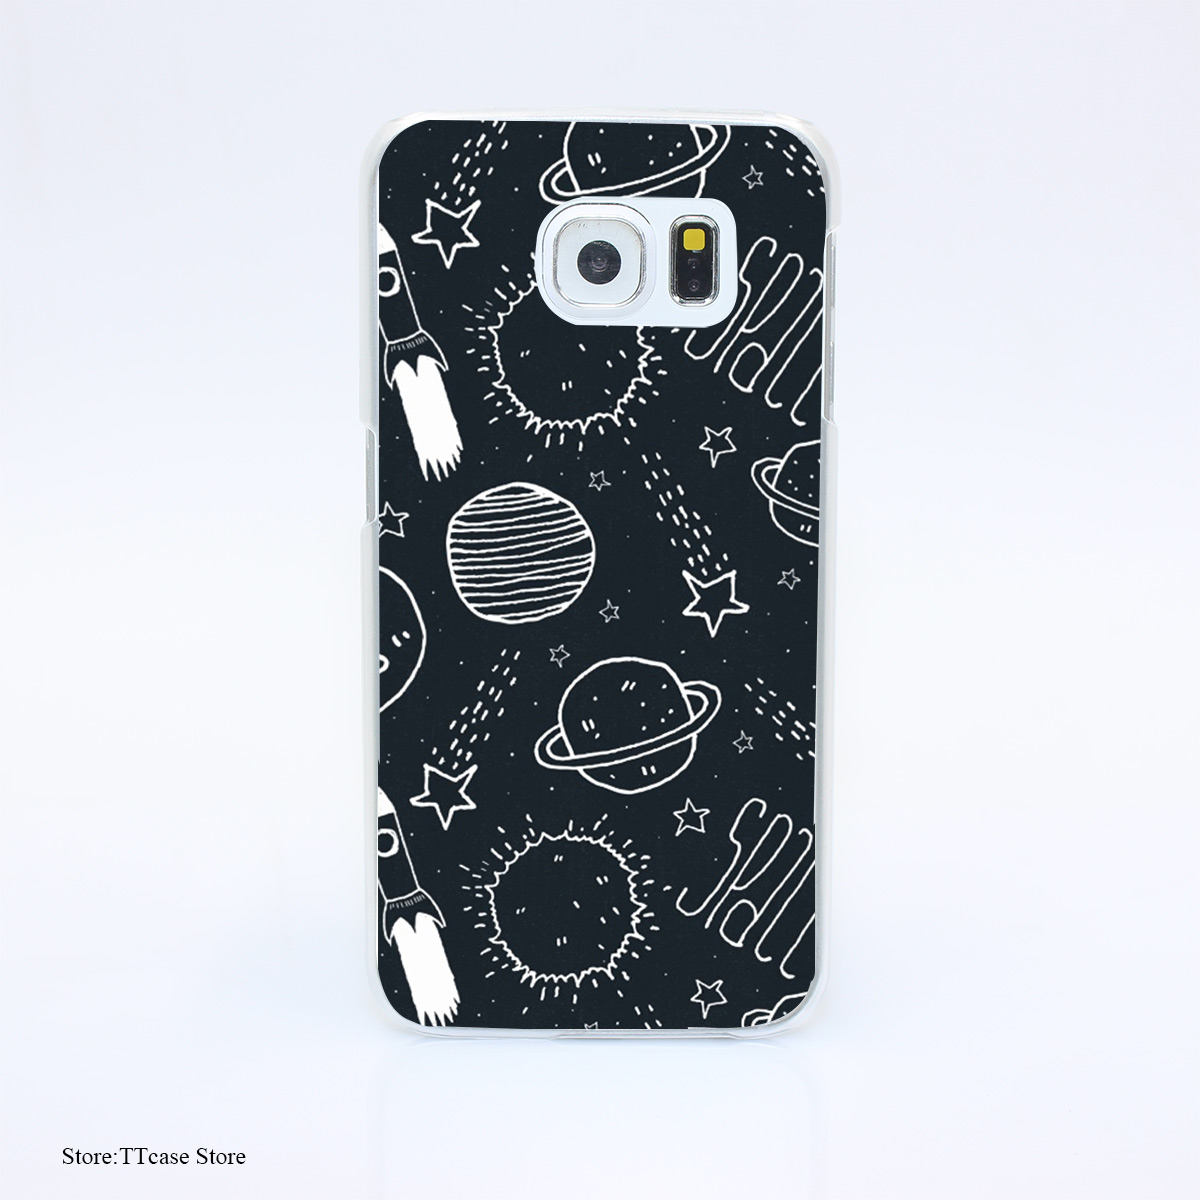 3088G Space Doodles Print Hard Transparent Case Cover for Galaxy S3 S4 S5 & Mini S6 S7 & edge